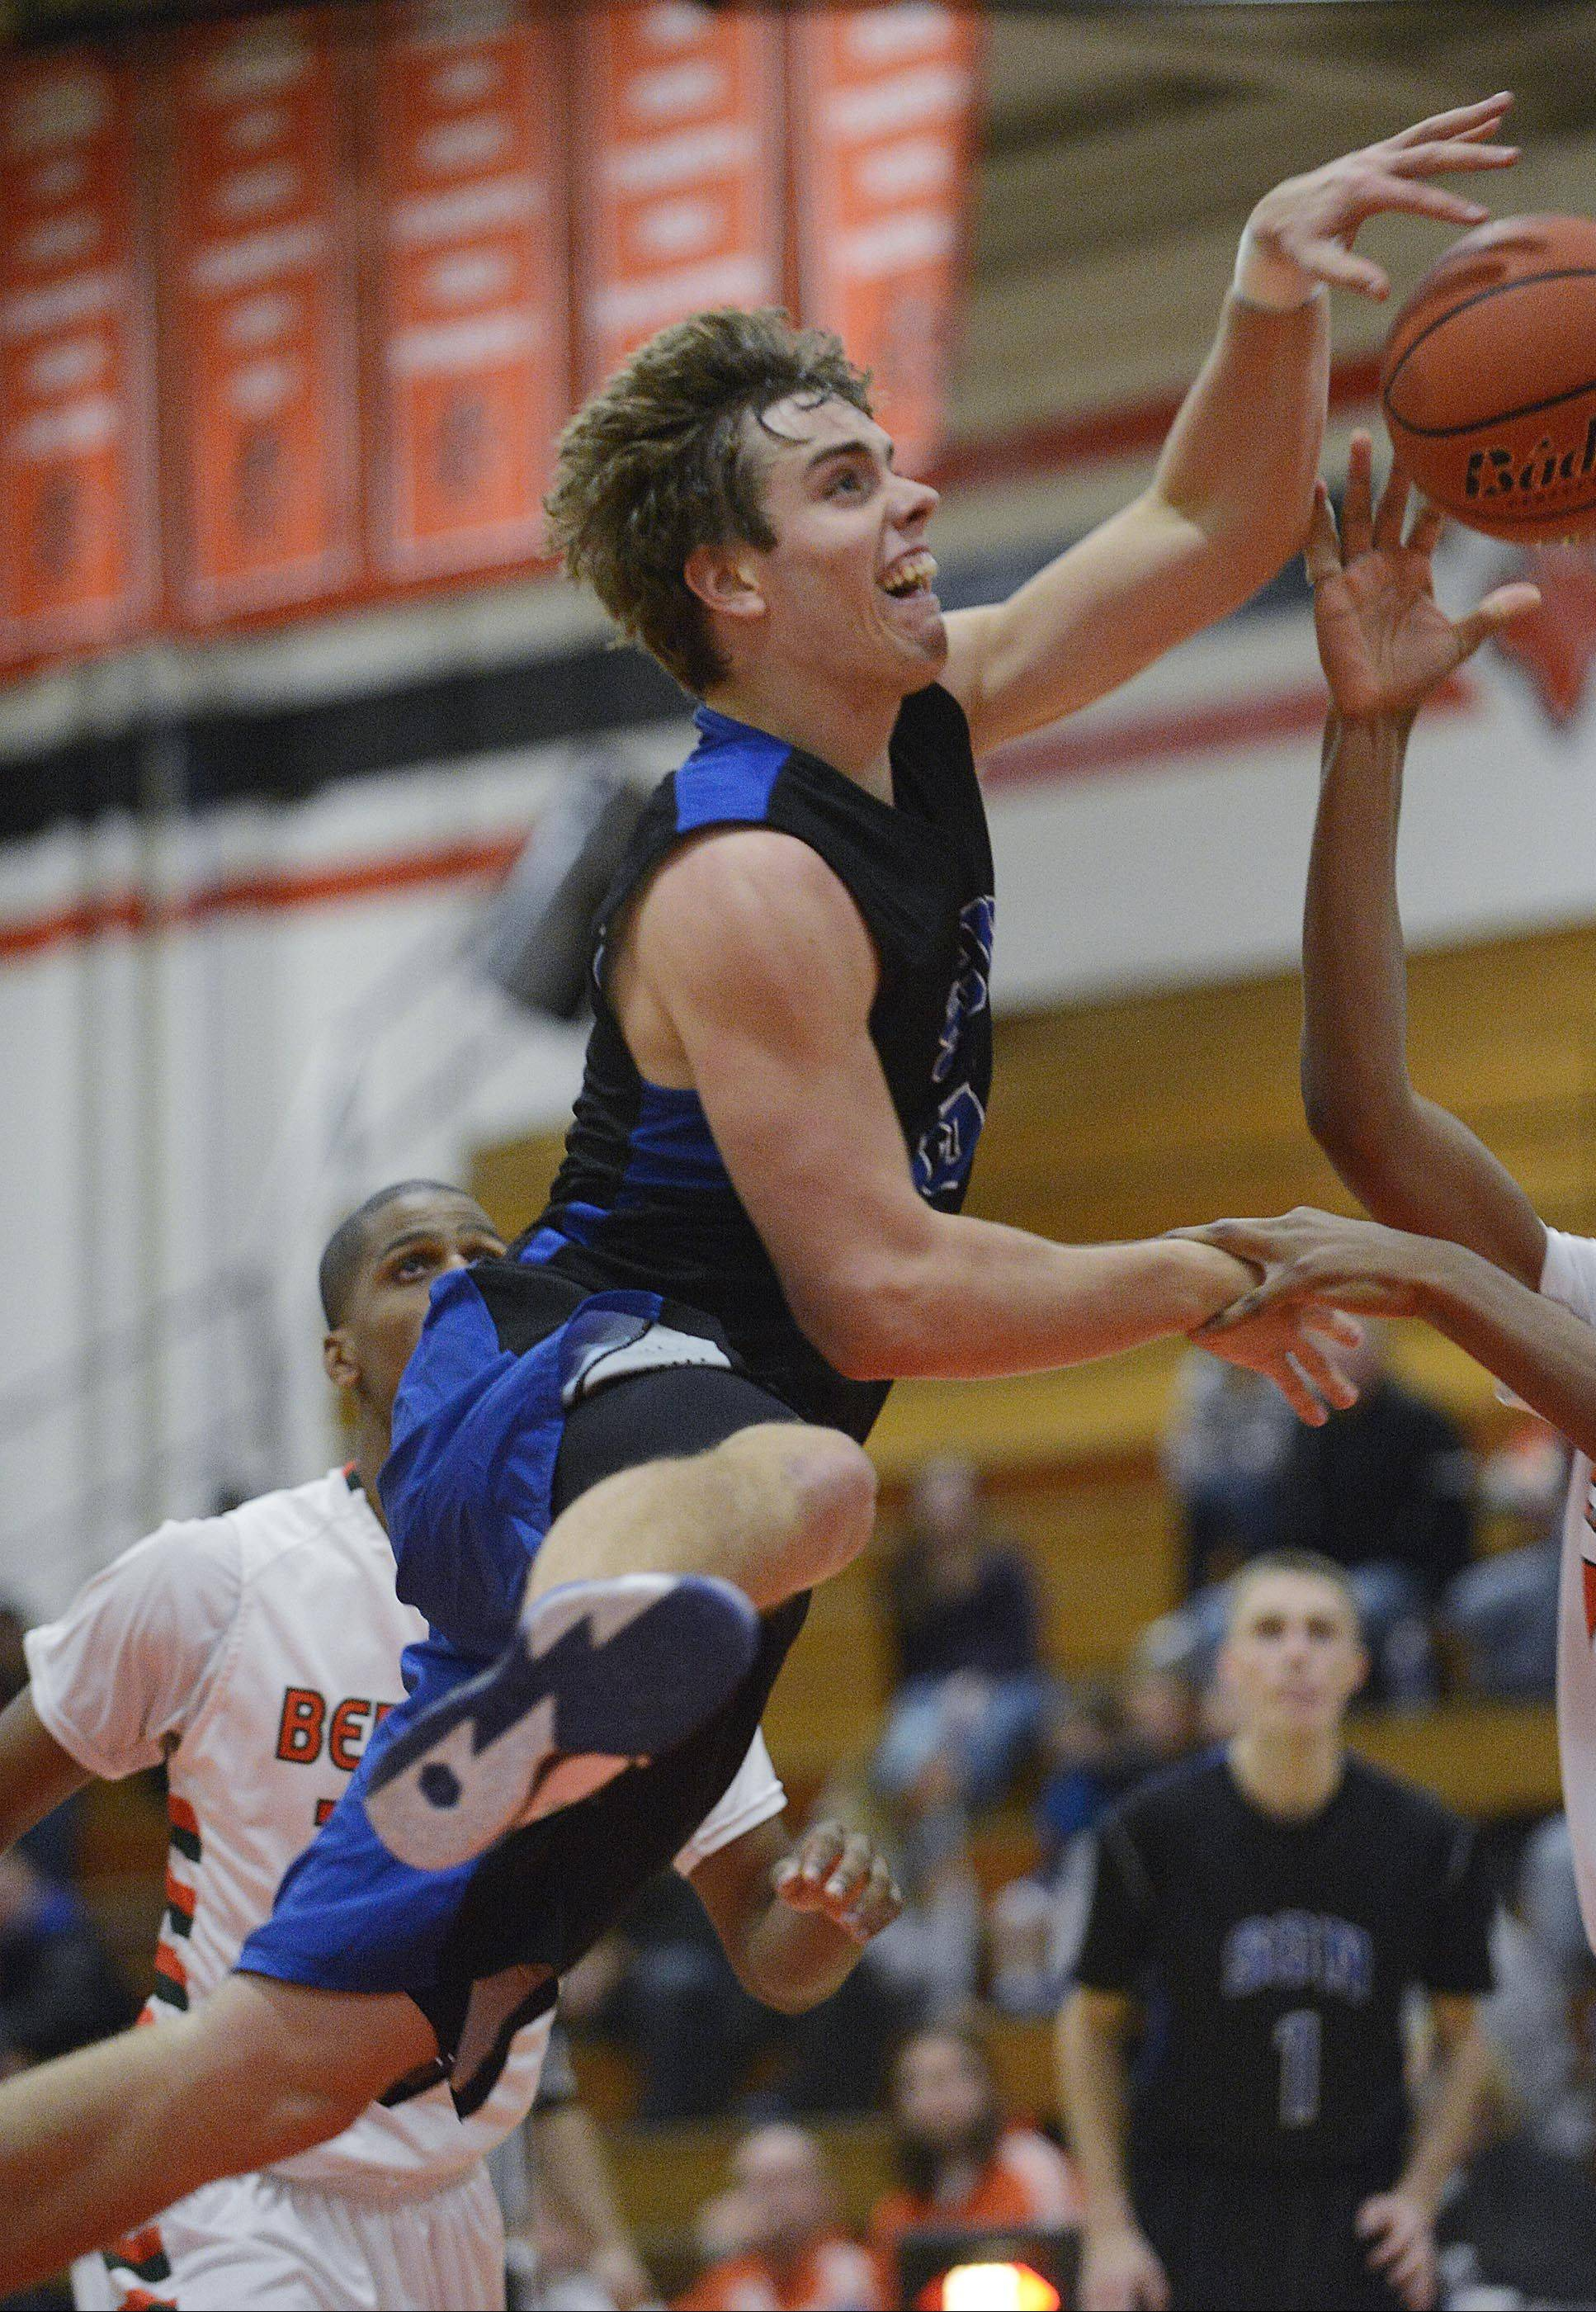 St. Charles North's Erik Miller, pictured in the season-opener against Plainfield East, said practices have been more intense since giving up 90 points to St. Charles East in their last game.